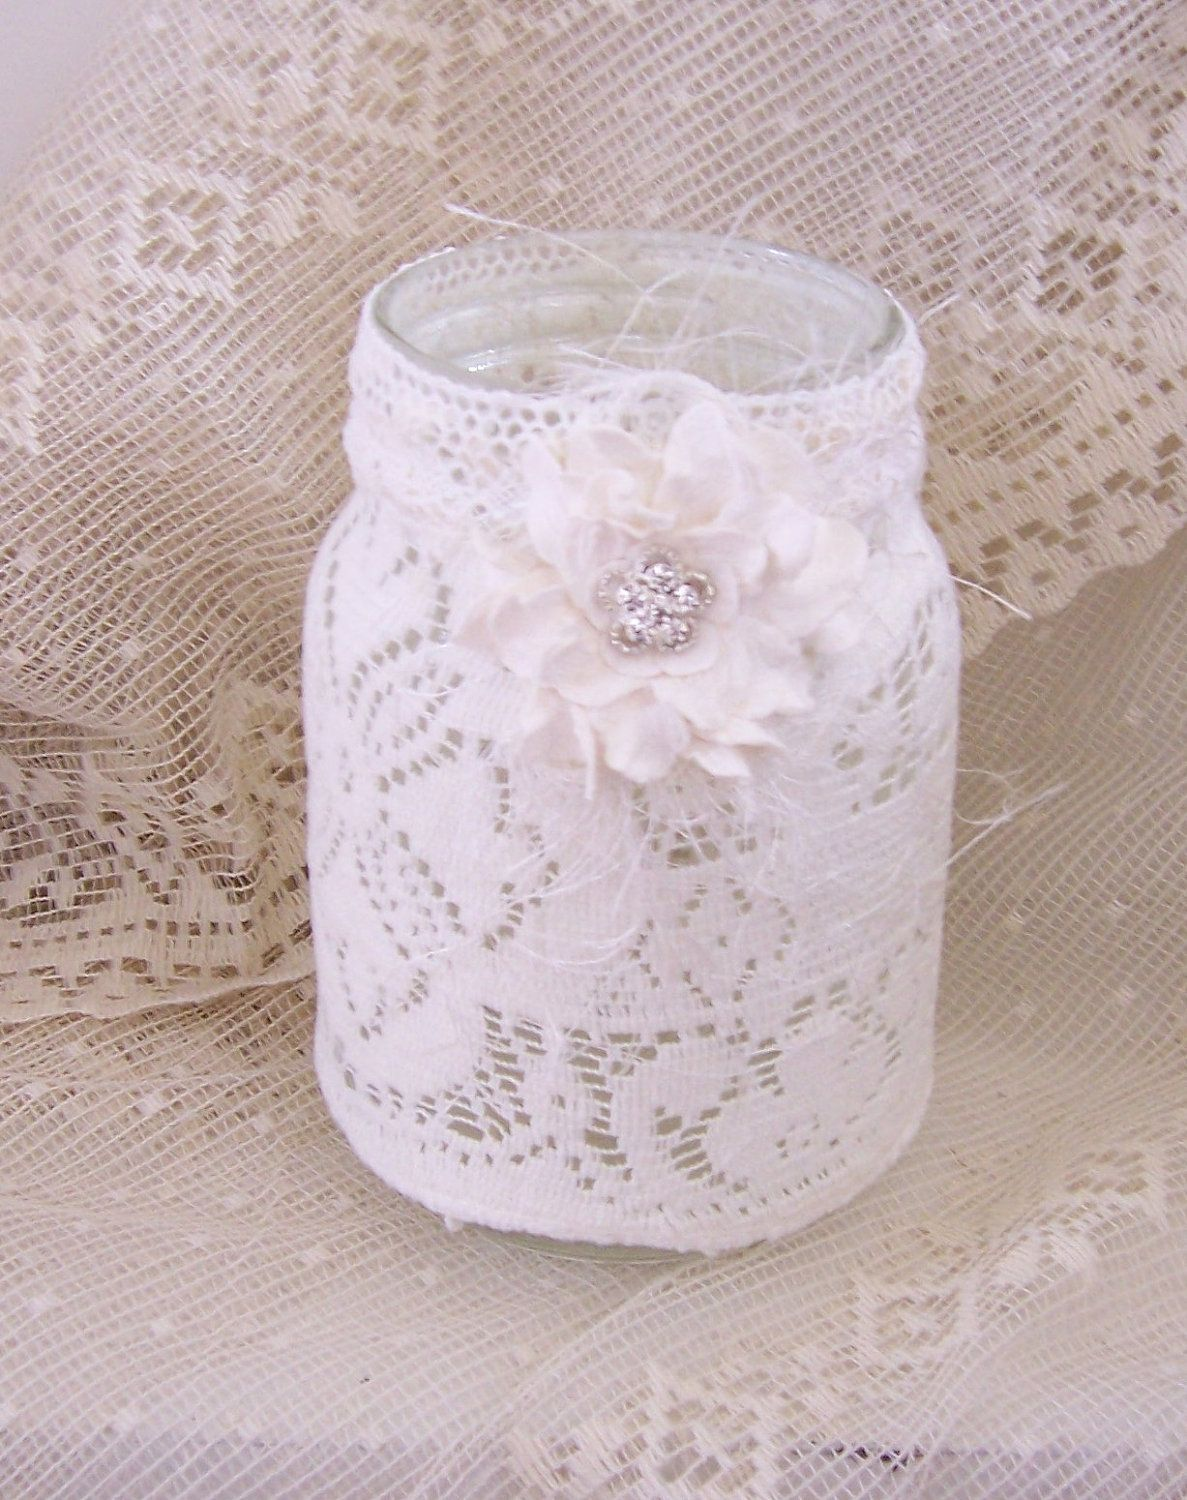 Wedding mason jar candle holder for centerpieces table decor